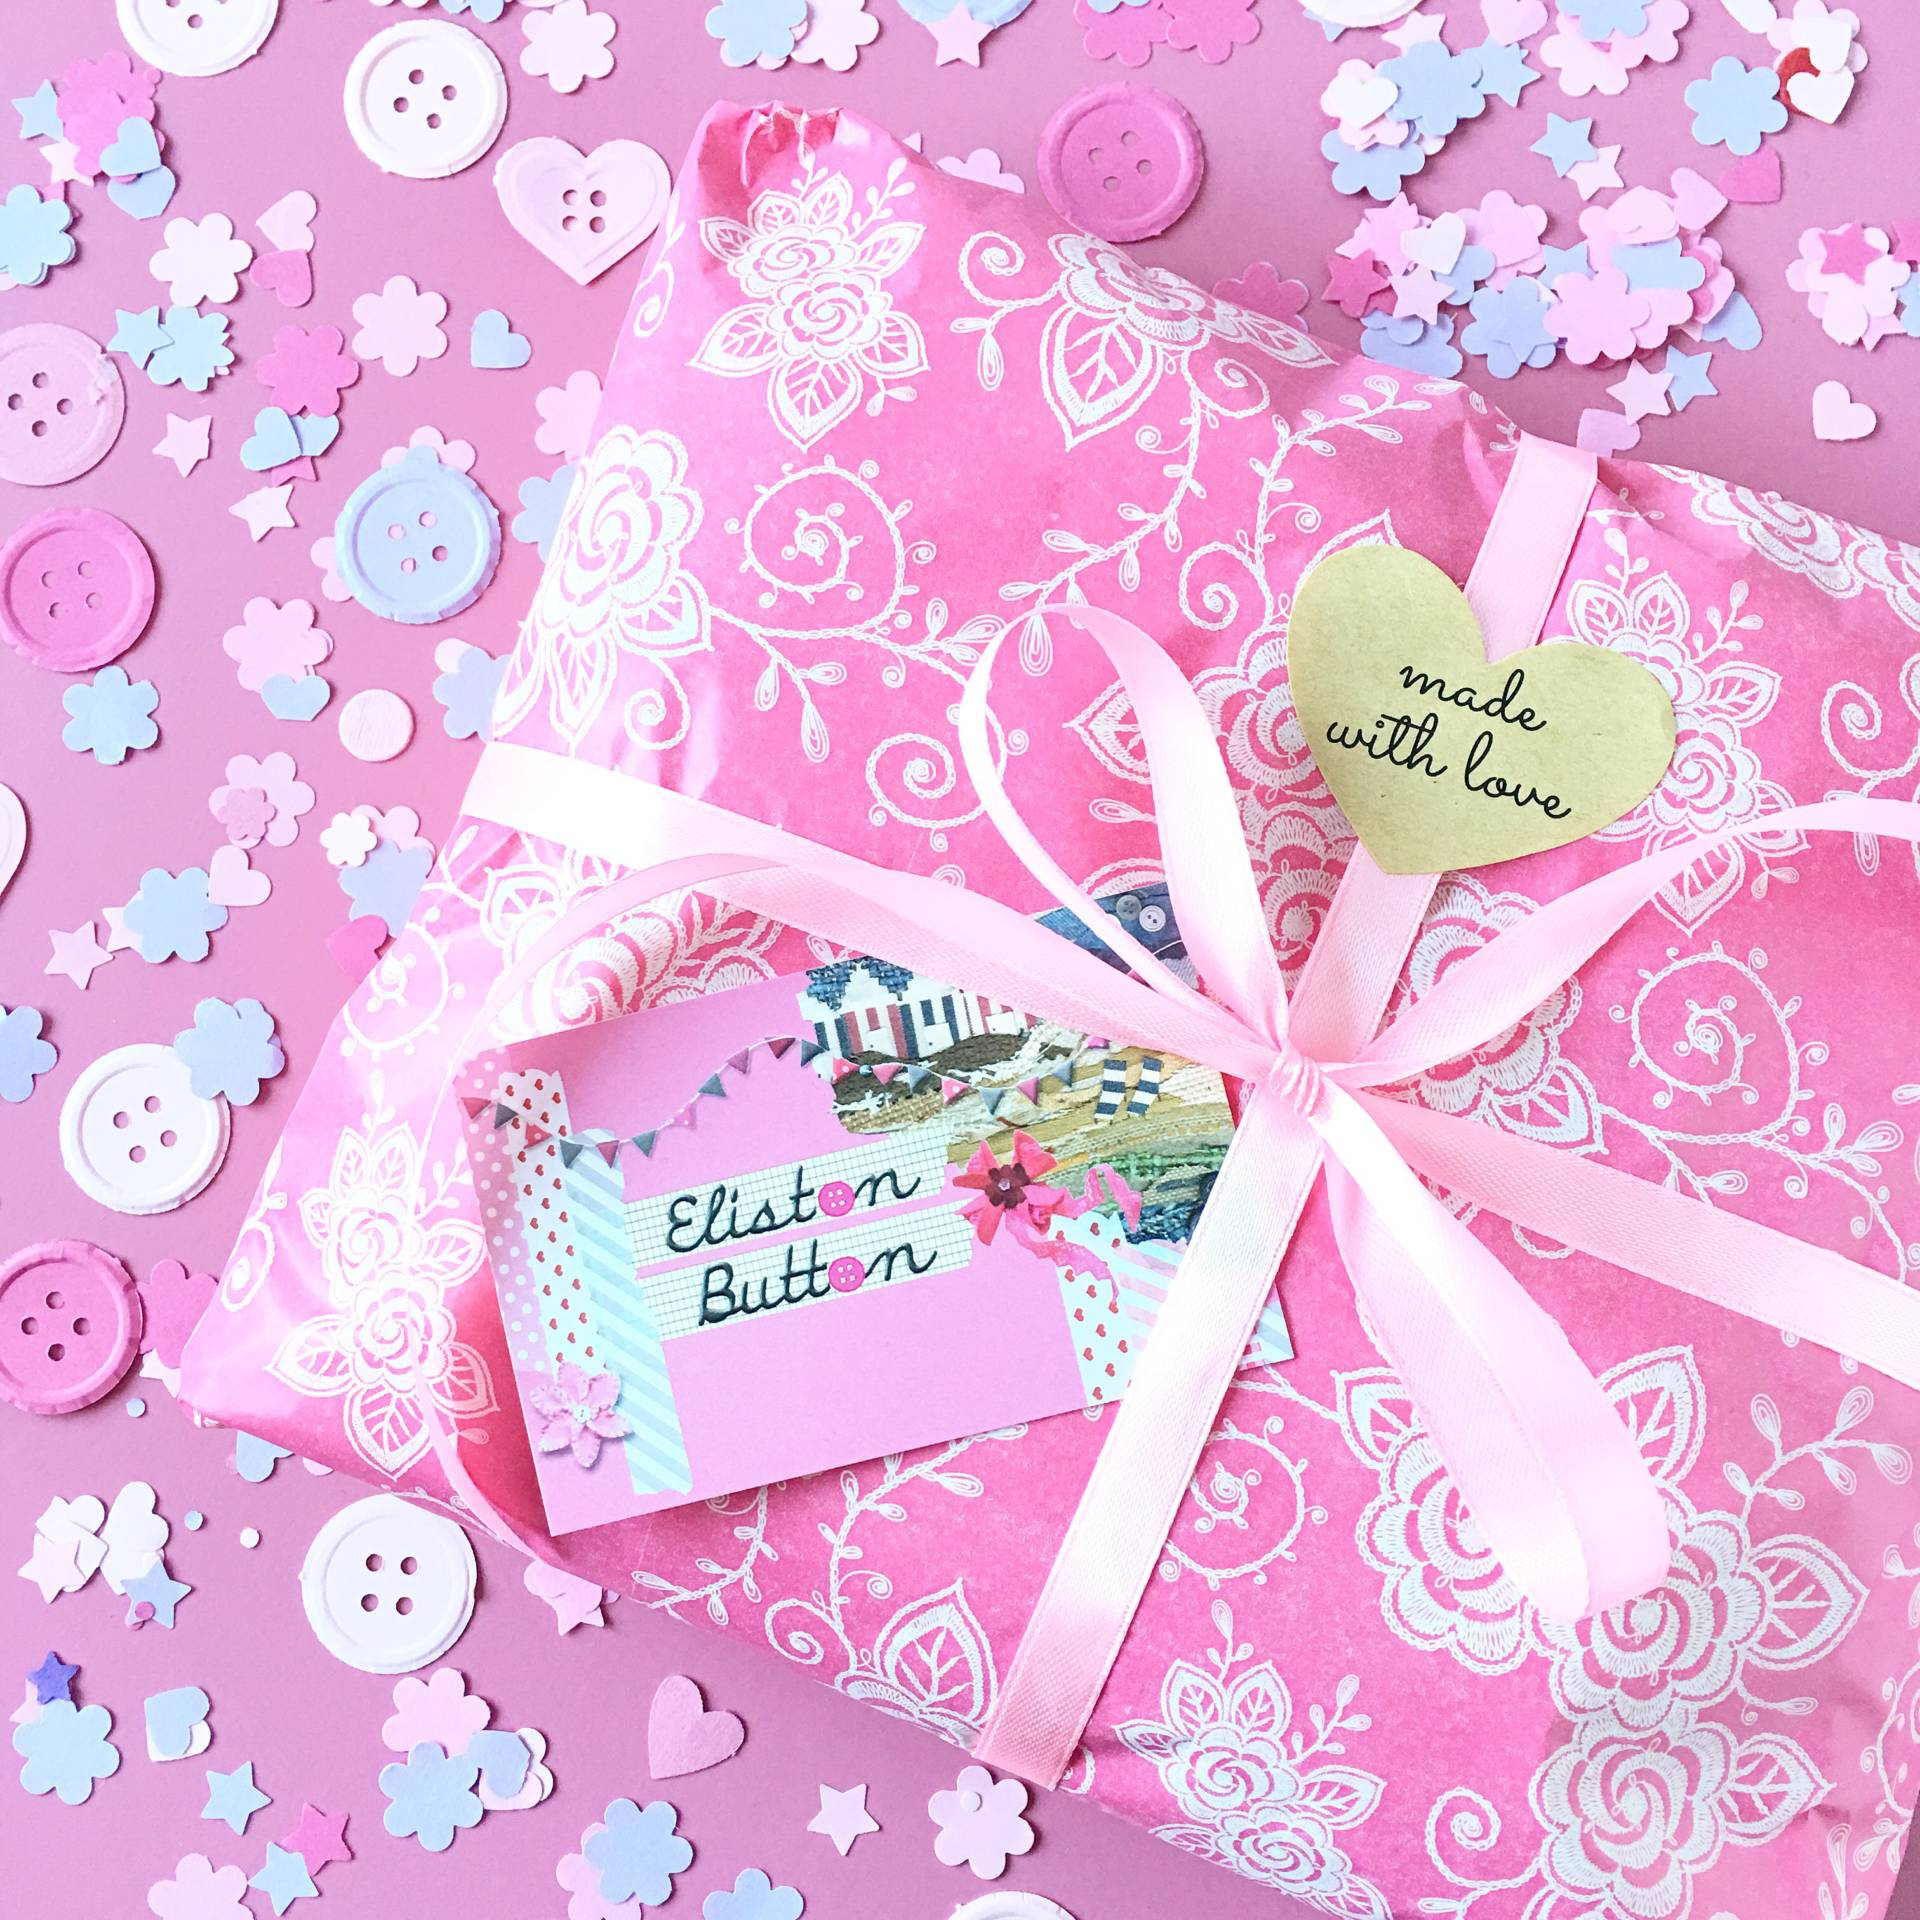 Day Six - Sell Yourself for Meet the Maker Week - Pretty Packaging all Tied in a Bow with Button Confetti - Eliston Button Etsy Shop - Meet the Maker Week at www.elistonbutton.com - Eliston Button - That Crafty Kid – Art, Design, Craft & Adventure.